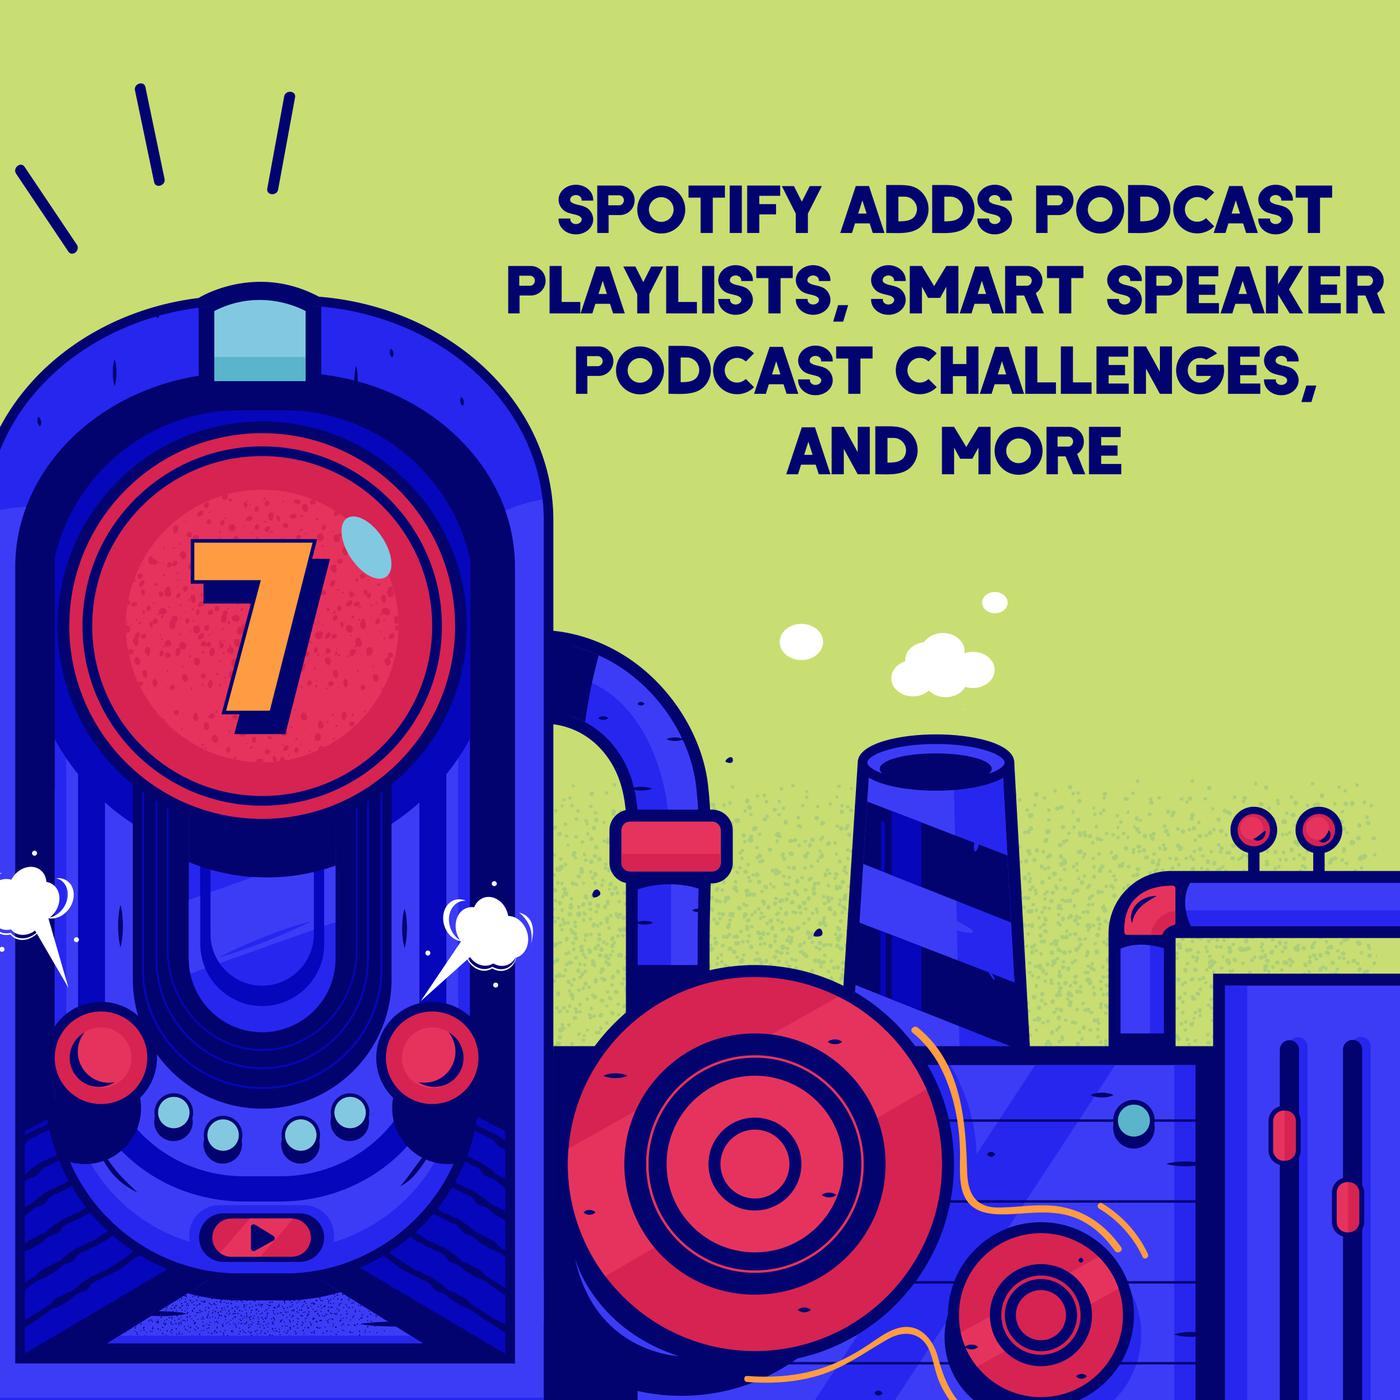 Episode 7 (TWIP) - Spotify Adds Podcast Playlists, Smart Speaker Podcast Challenges, and More.